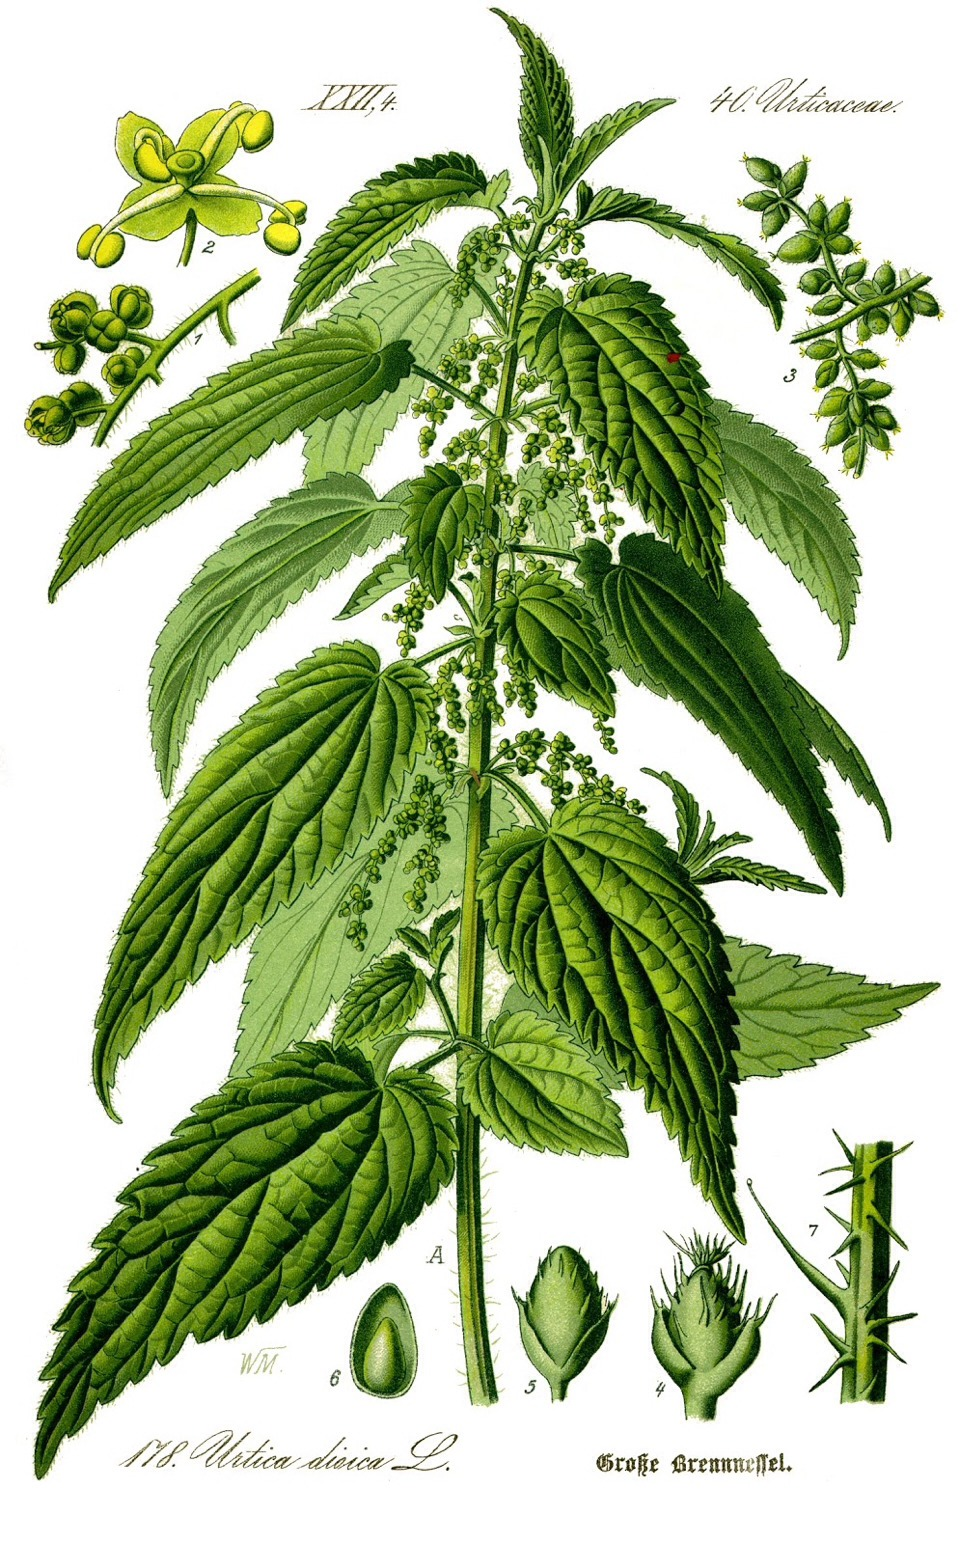 Nettle -aka the bowel mover - These plants are best known as stinging nettle plants - when nettle leaves are dried and eaten the saliva neutralizes the sting - Nettles are incredibly effective in removing unwanted pounds